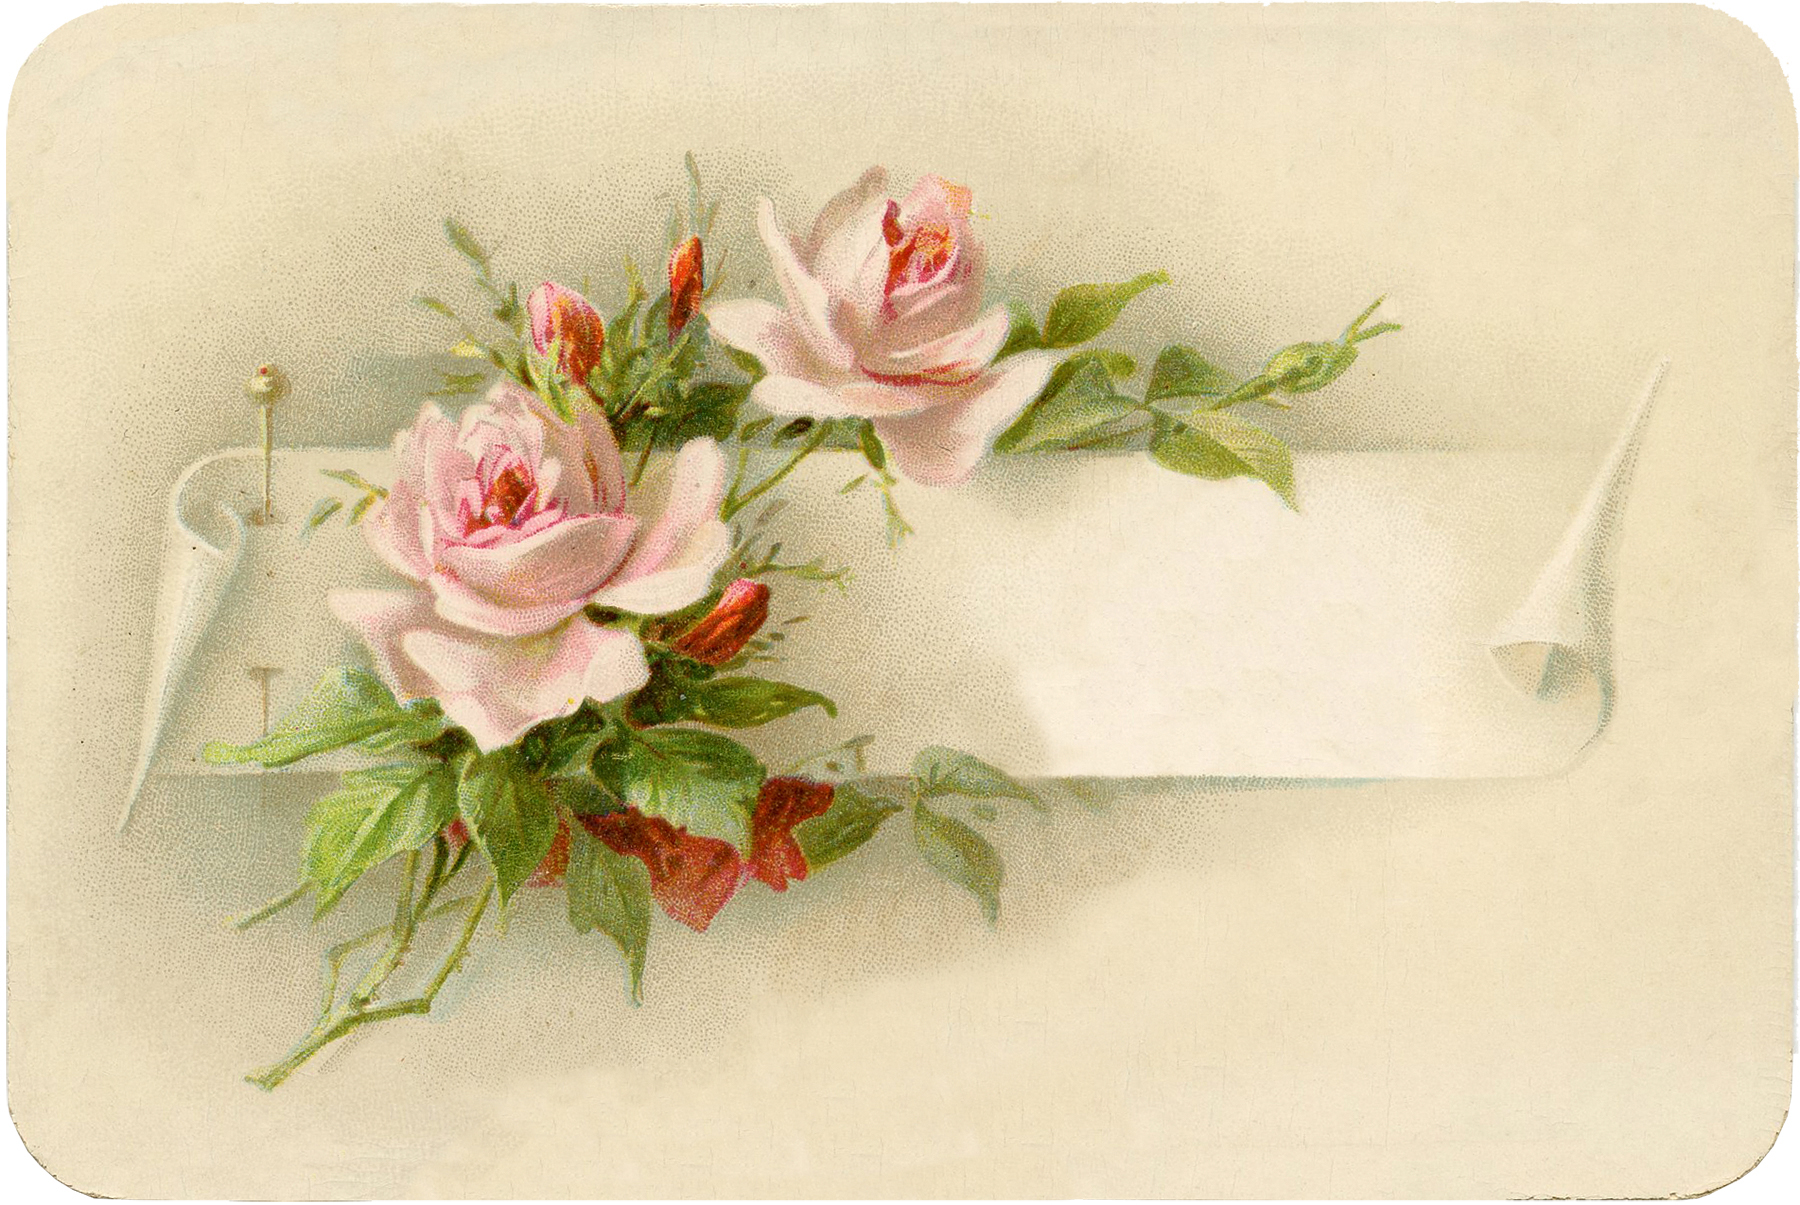 Free printable border designs for paper - Exceptionally Beautiful Vintage Roses With Pin Image